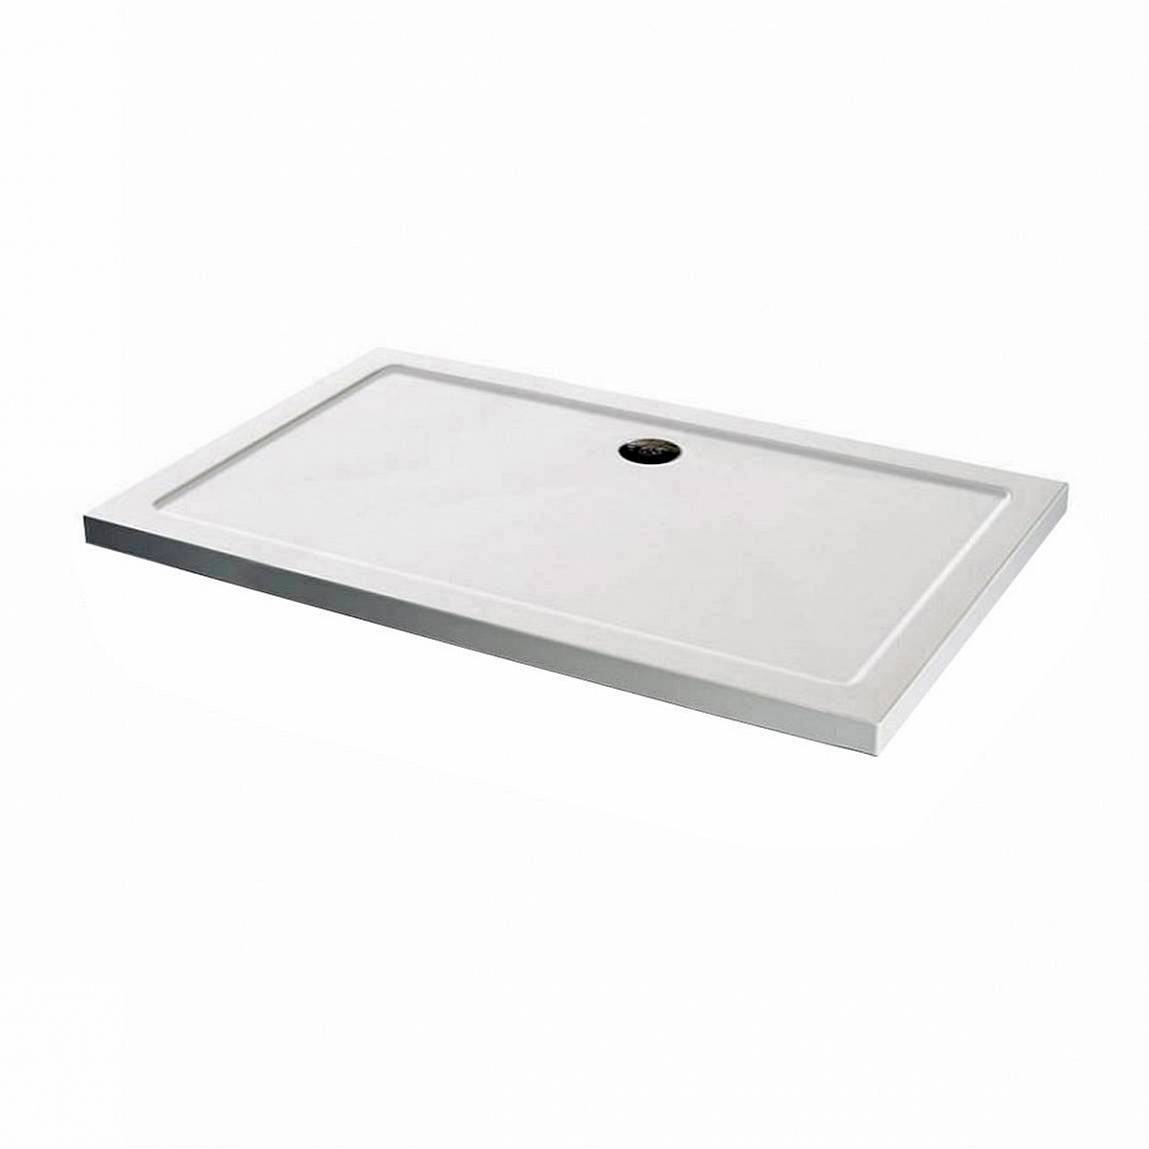 Image of Rectangular Stone Shower Tray 1200 x 900